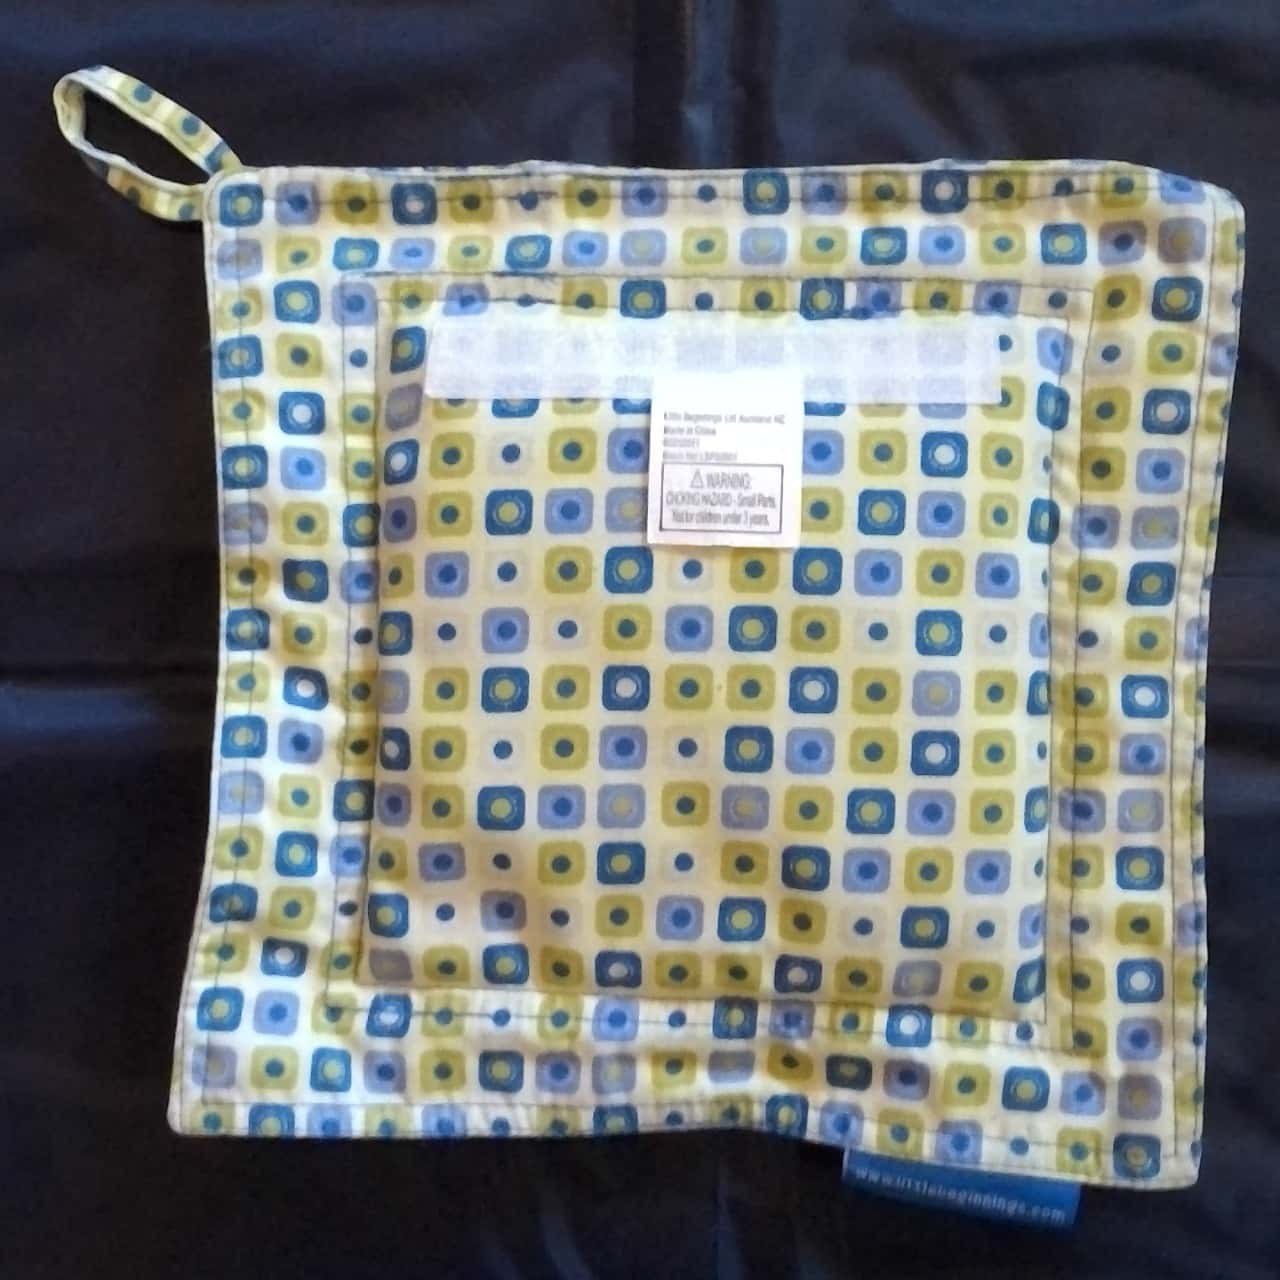 SENSORY ITEMS CLIMAGEL WEIGHTED BLANKET & PEEK SEEK FIND ACTIVITY PUZZLE  80 cm x 120 cm